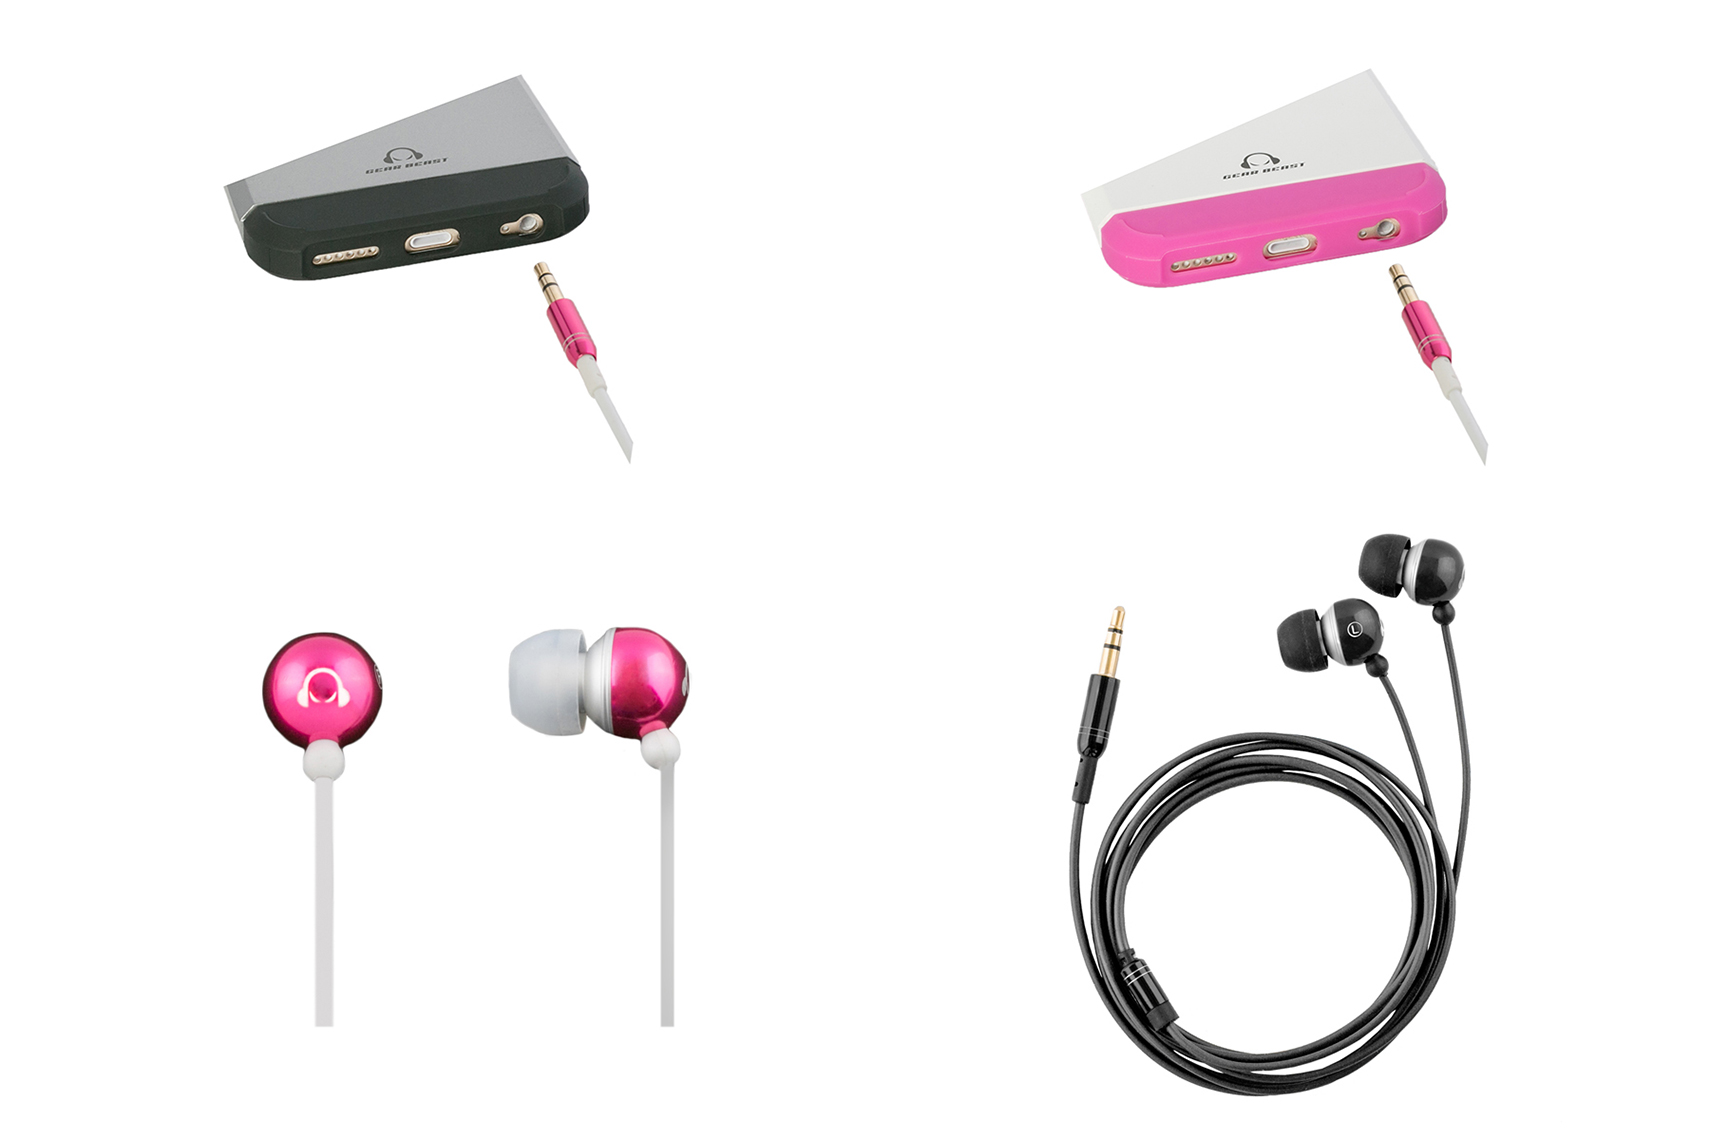 iPhone 6 Ear Bud Color Coordinated Accessories